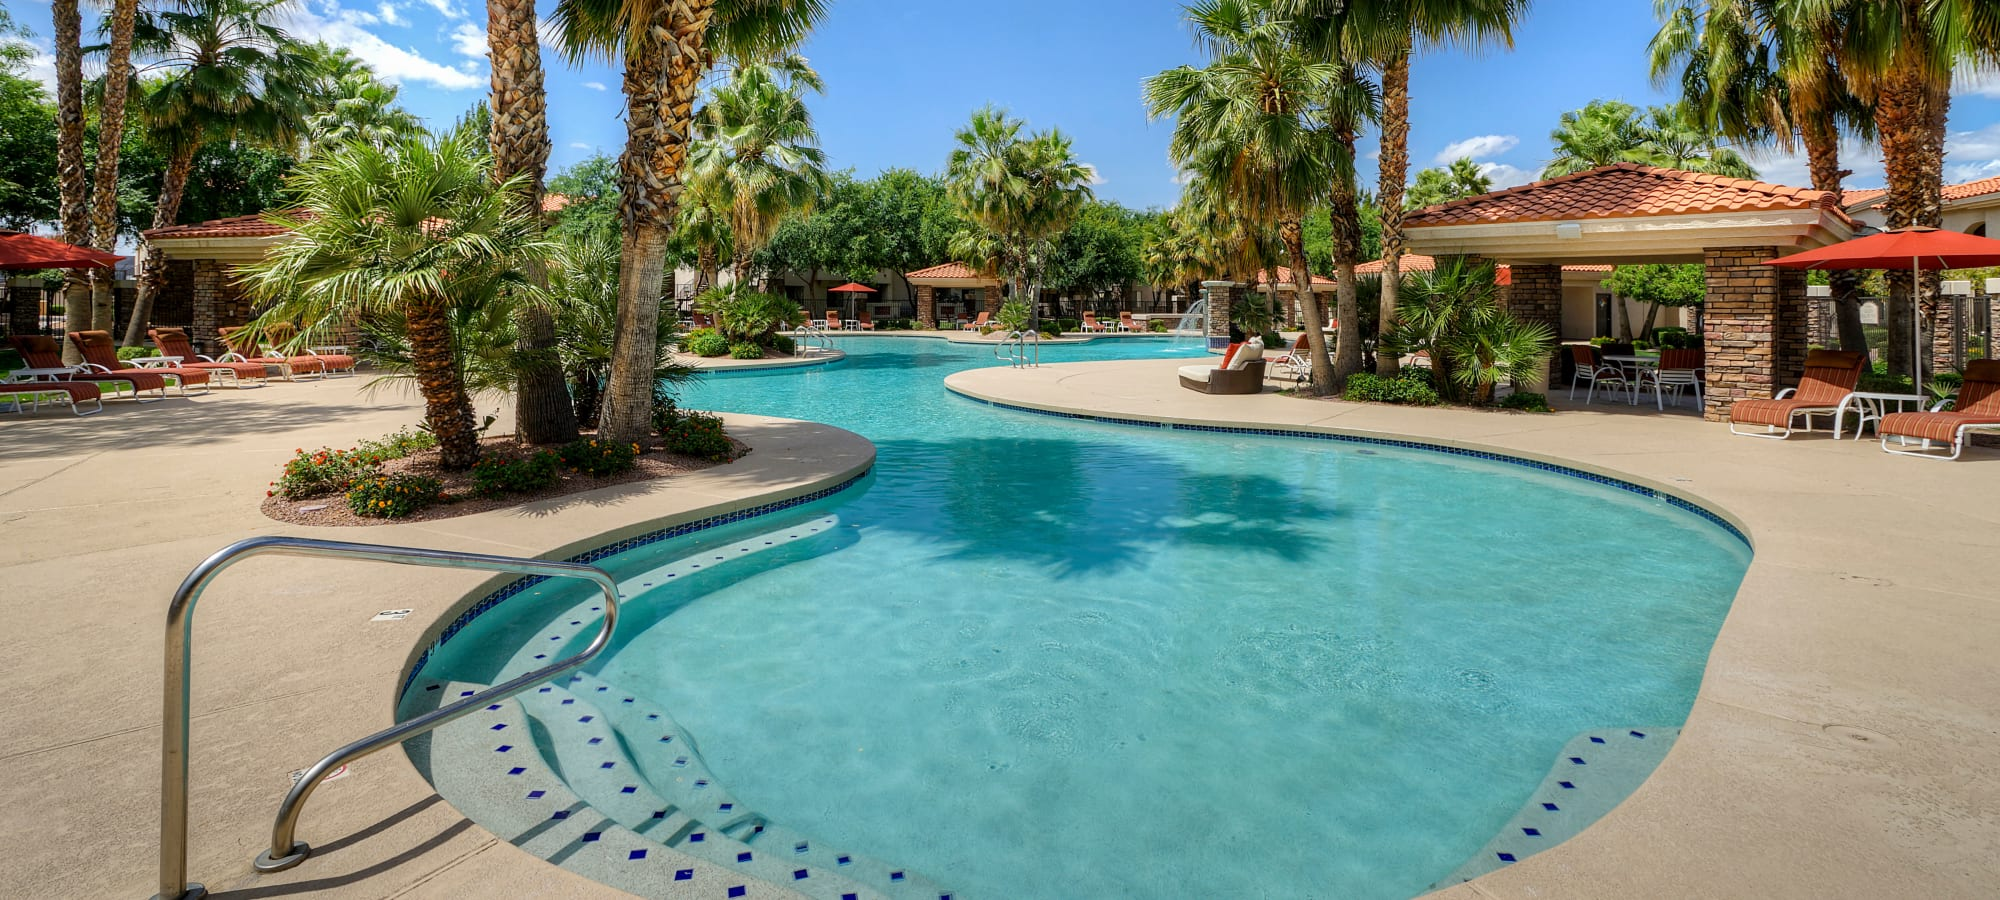 Resort-style swimming pool and water features at San Palacio in Chandler, Arizona